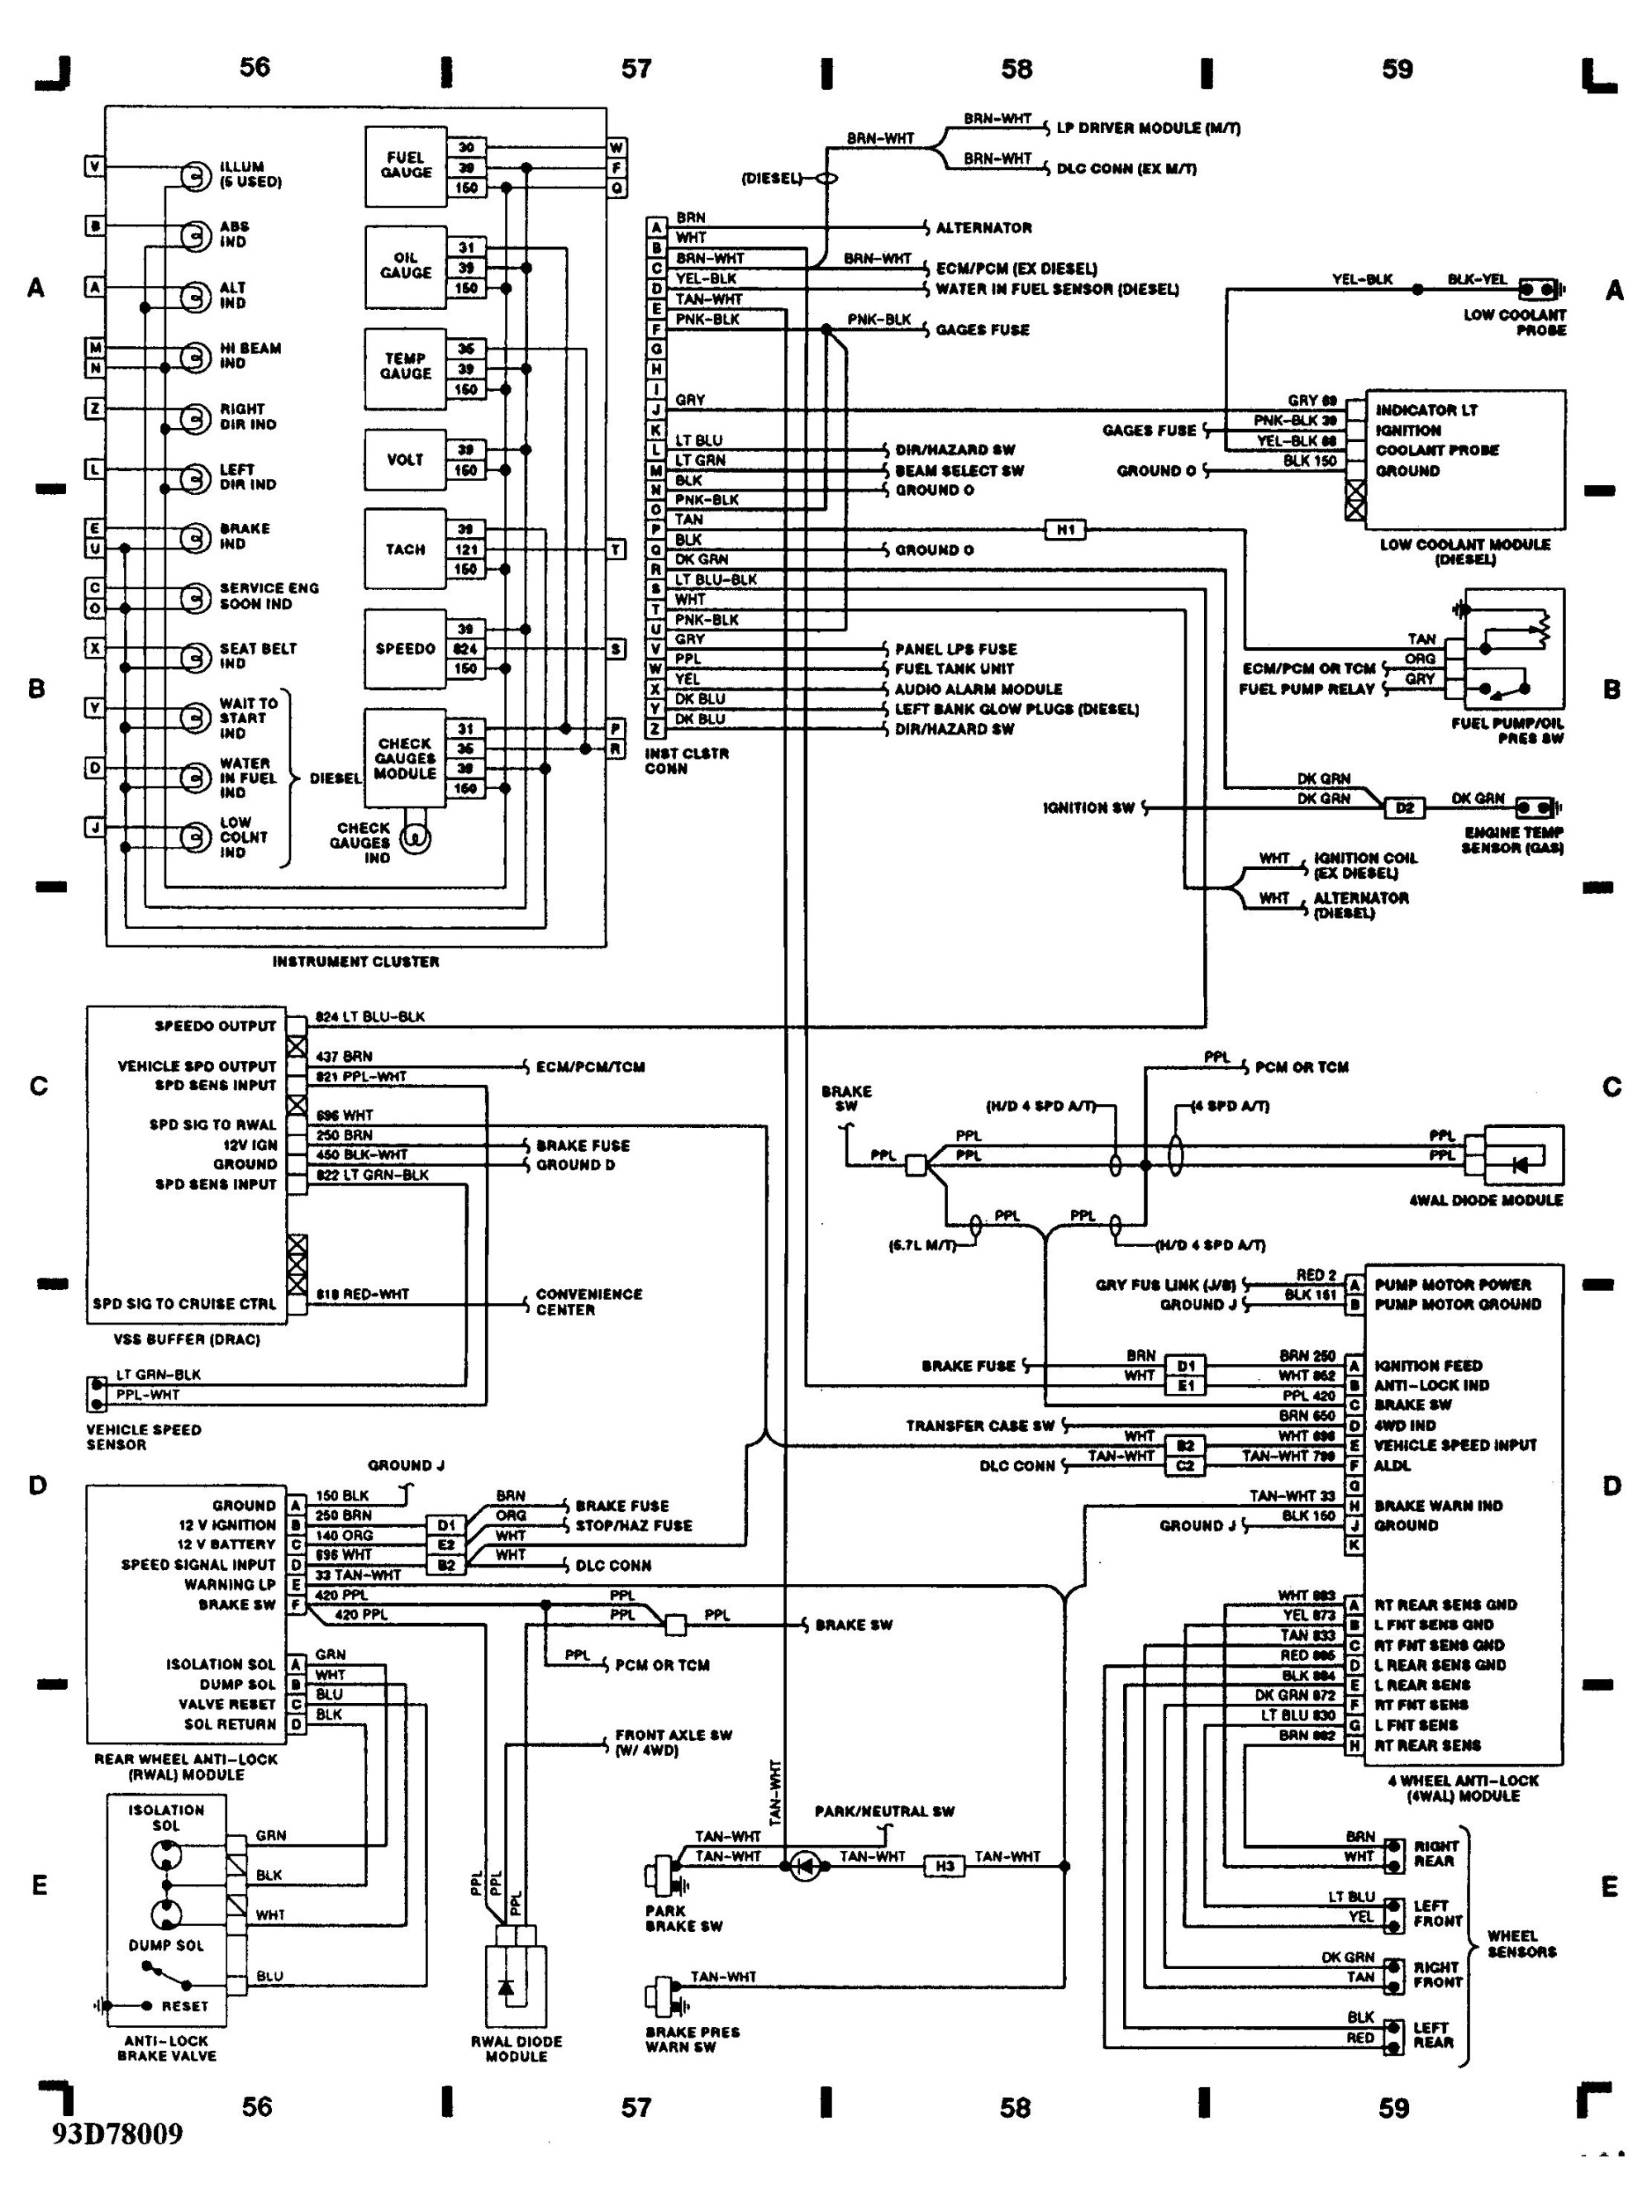 hight resolution of 1995 caprice wiring diagram schematic wiring diagrams u2022 rh arcomics co 2000 monte carlo engine diagram